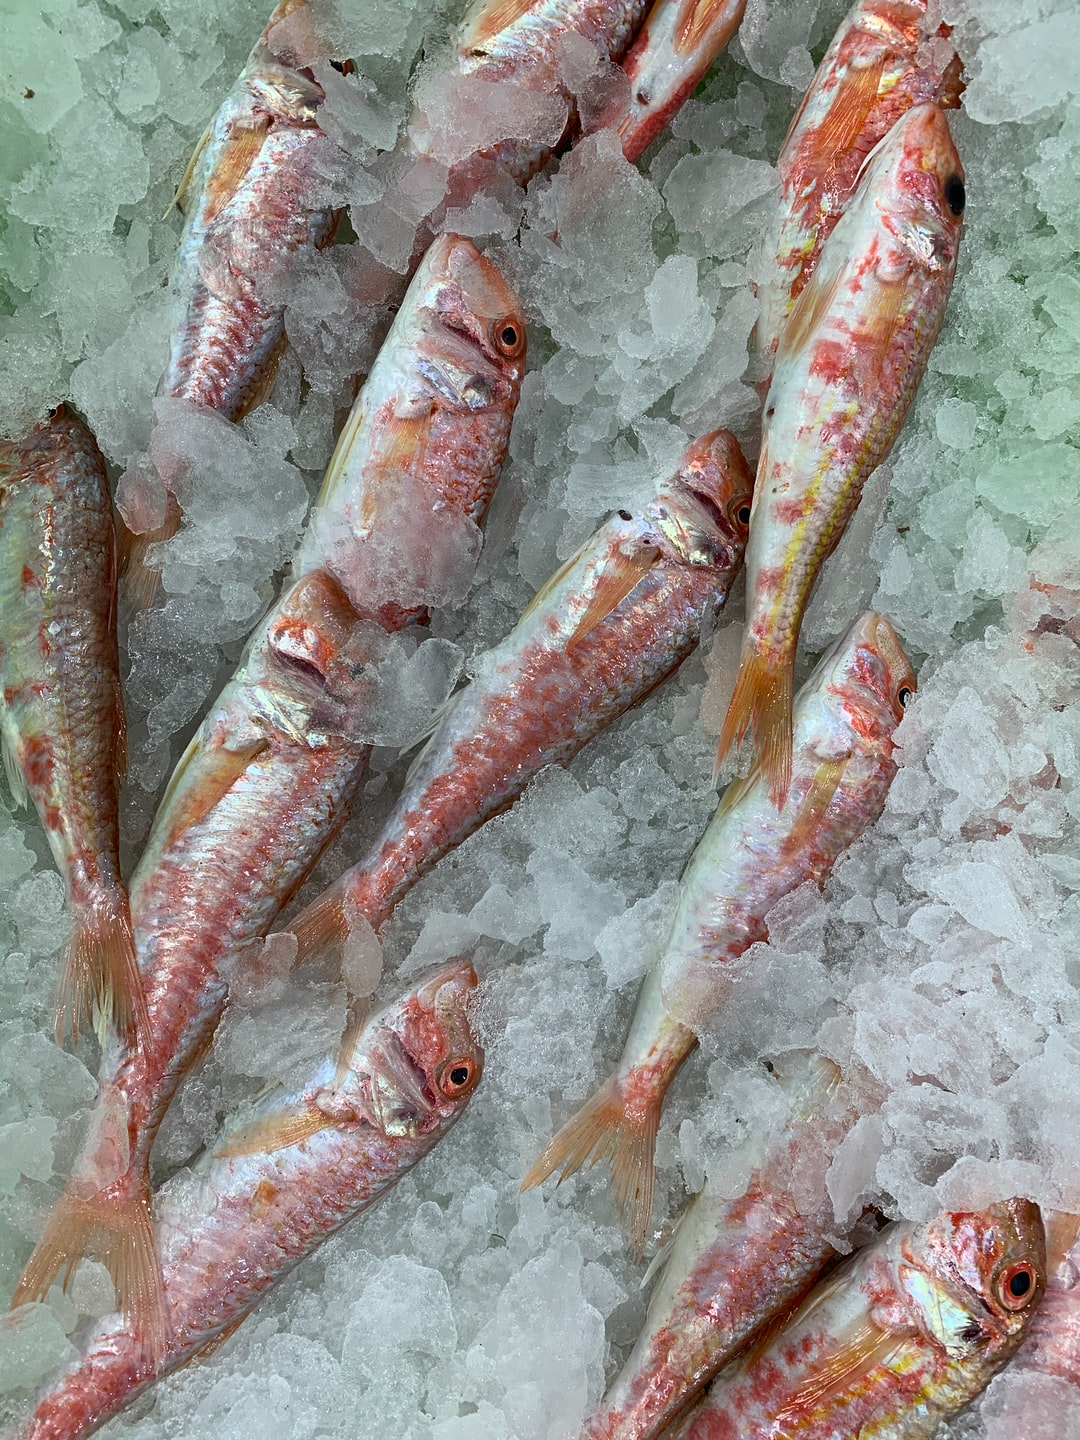 Red mullet on display in our local supermarket in Spain.